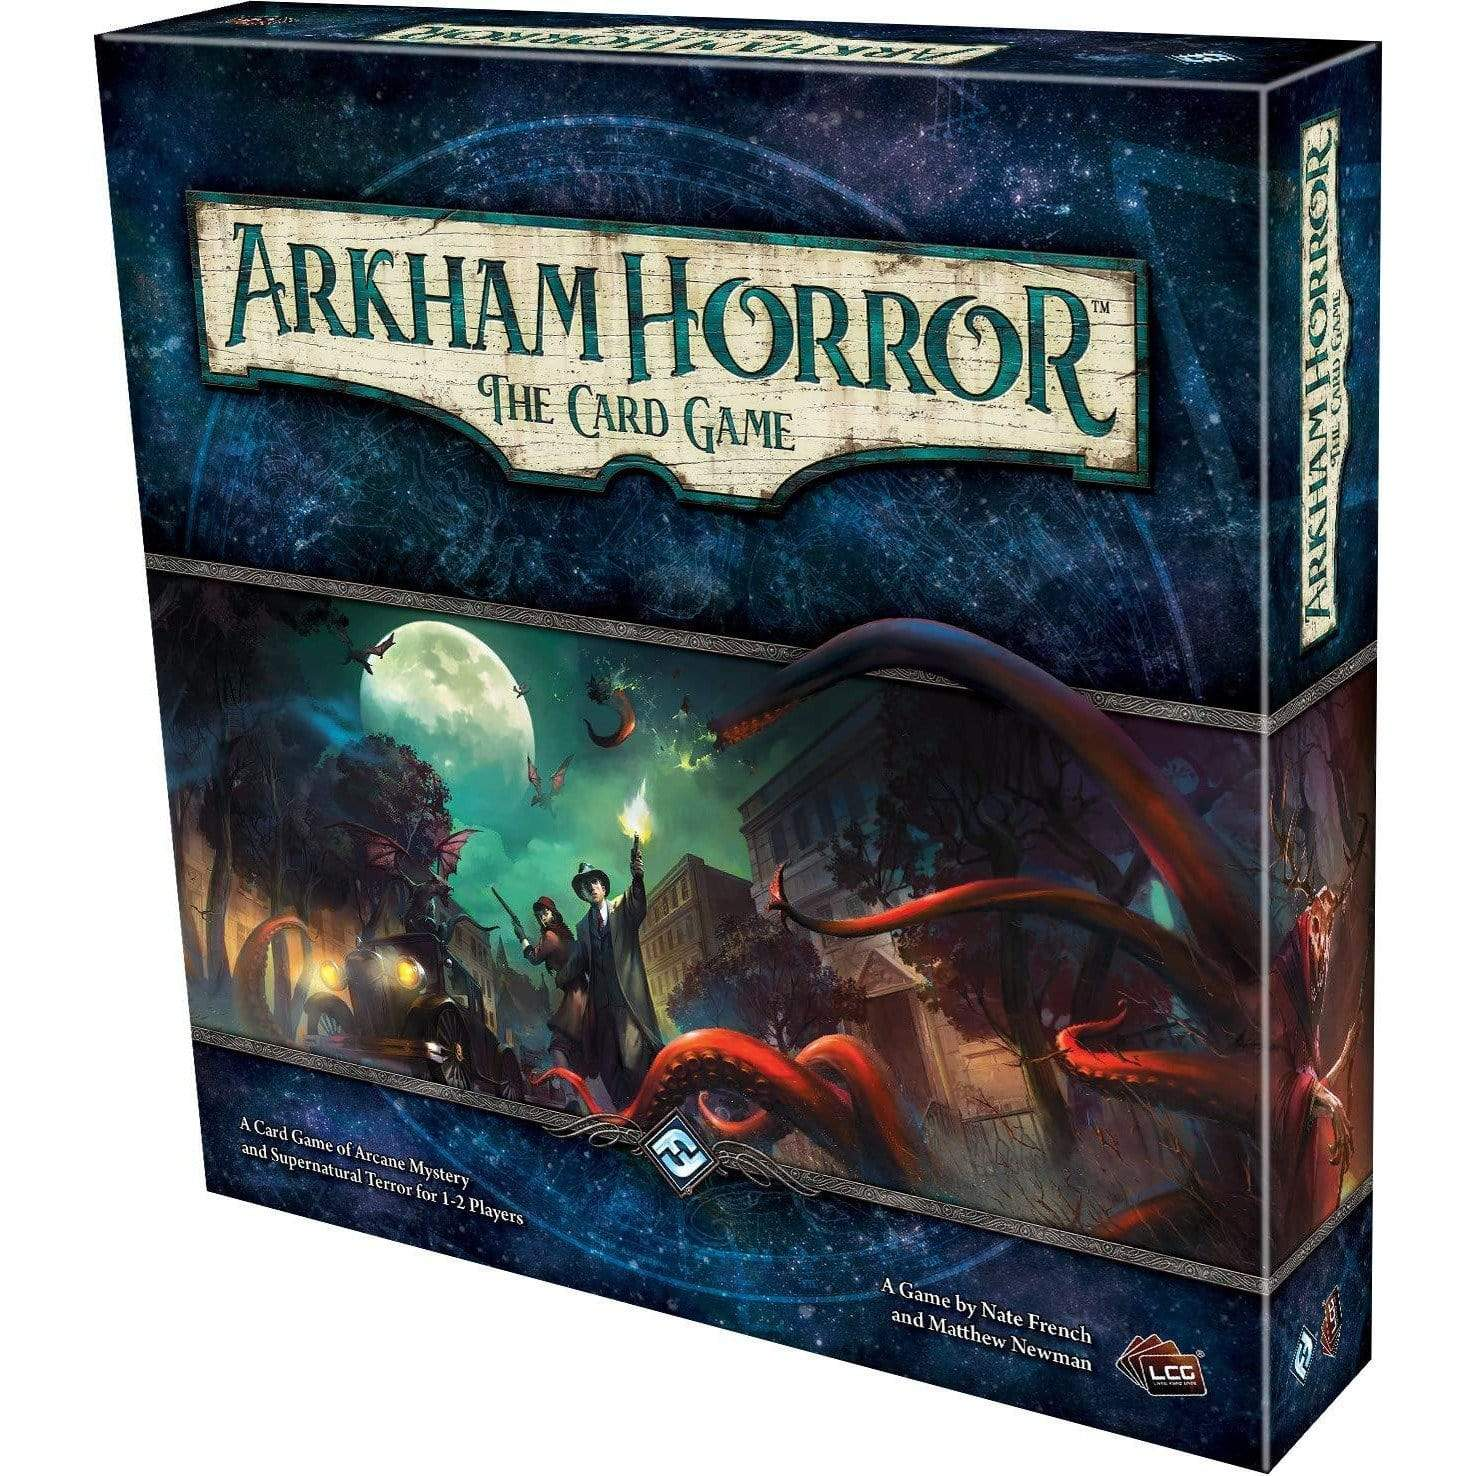 Arkham Horror: The Card Game Alliance Games Board Games